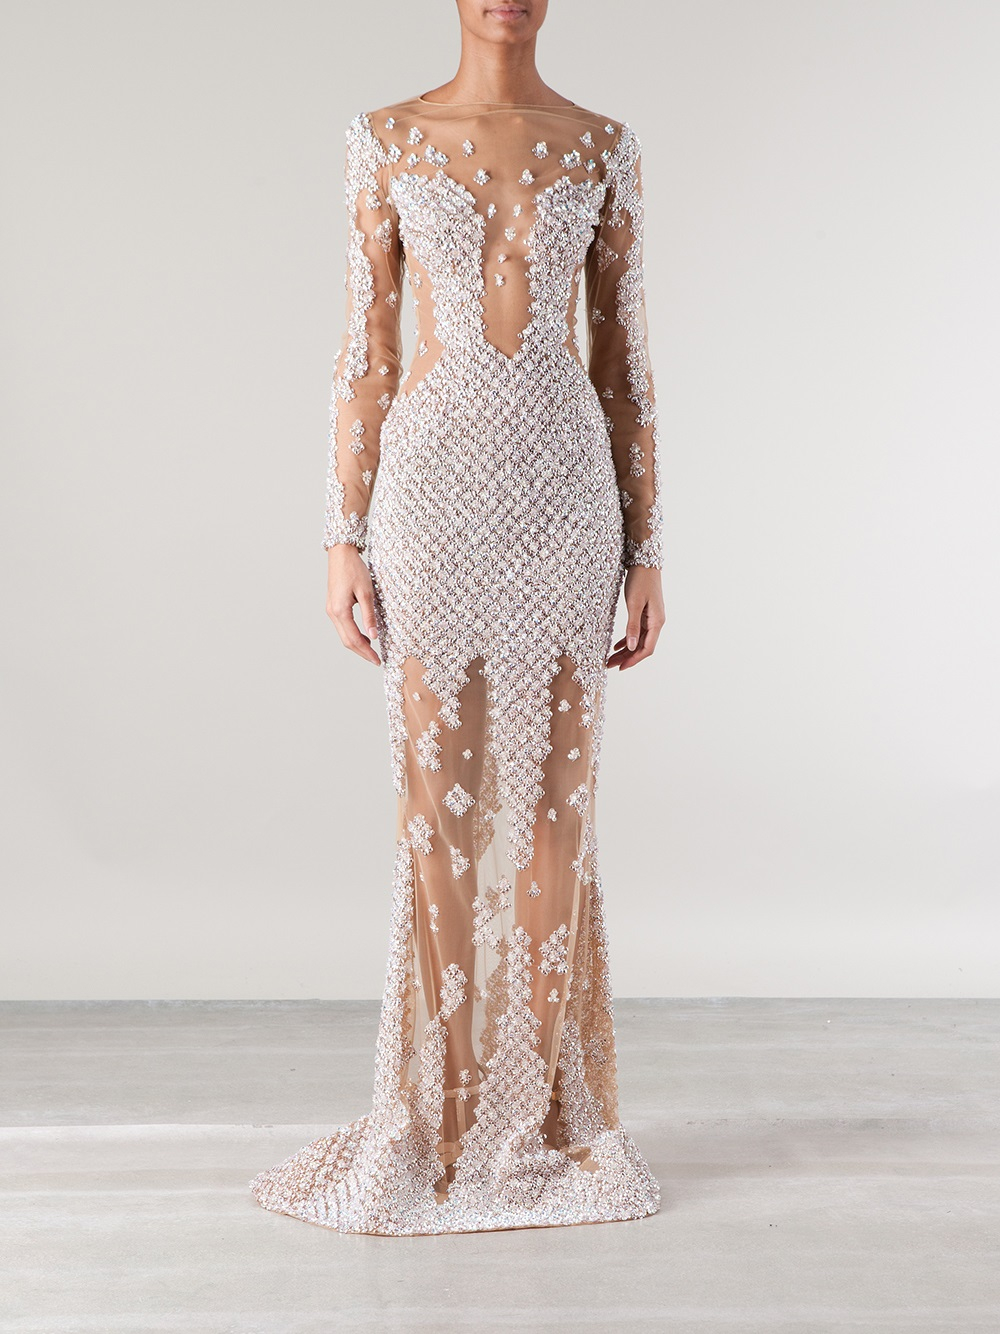 Lyst - Zuhair Murad Embellished Sheer Gown in White